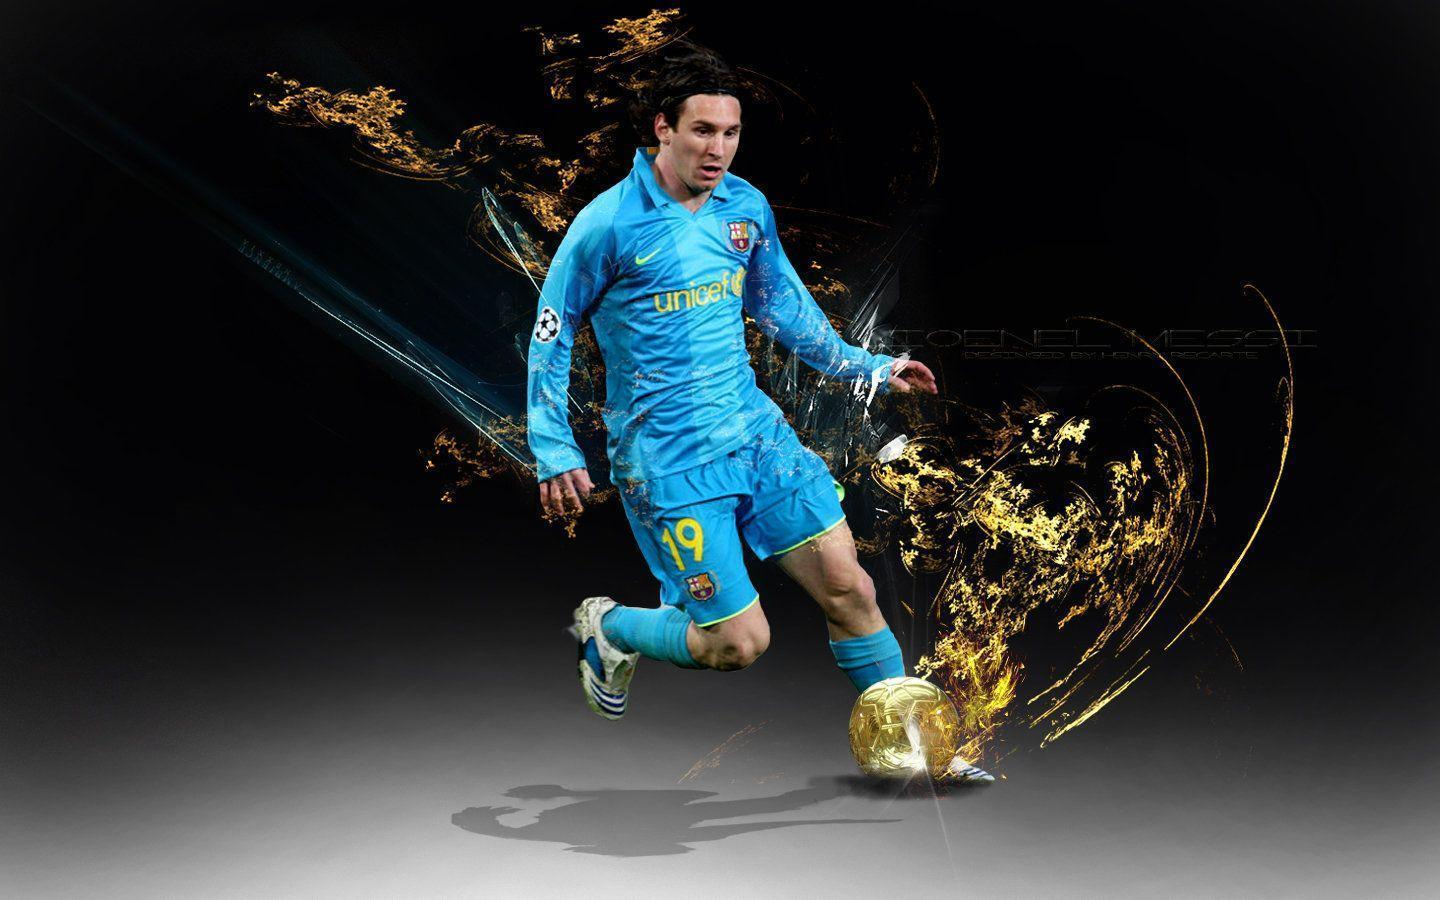 Lionel Messi 2017 Wallpapers 1440x900